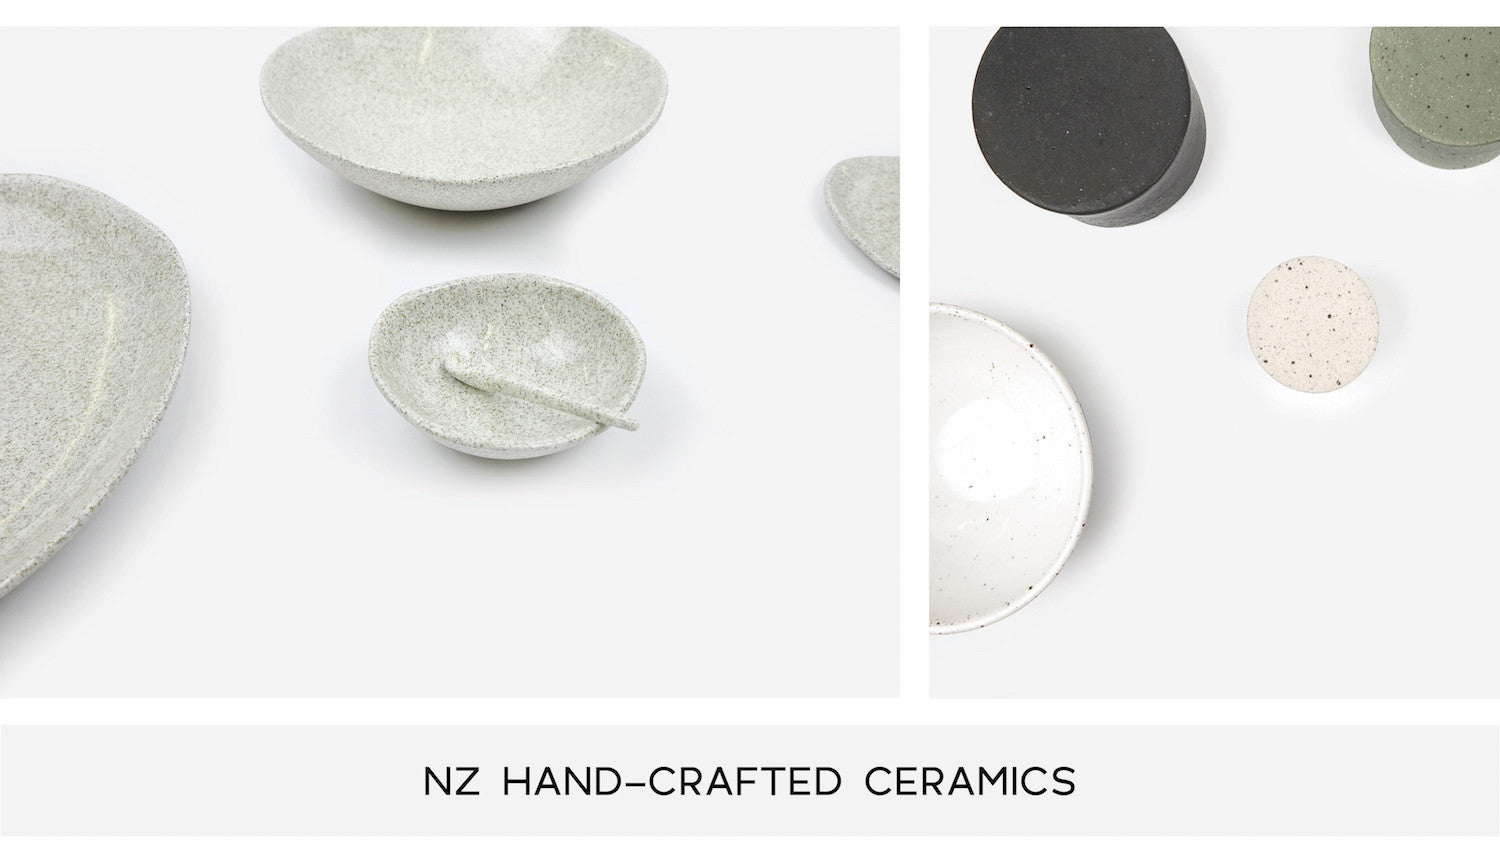 NZ Hand Crafted Ceramics - Houston Design - Renee Boyd - Paper Plane Store - NZ